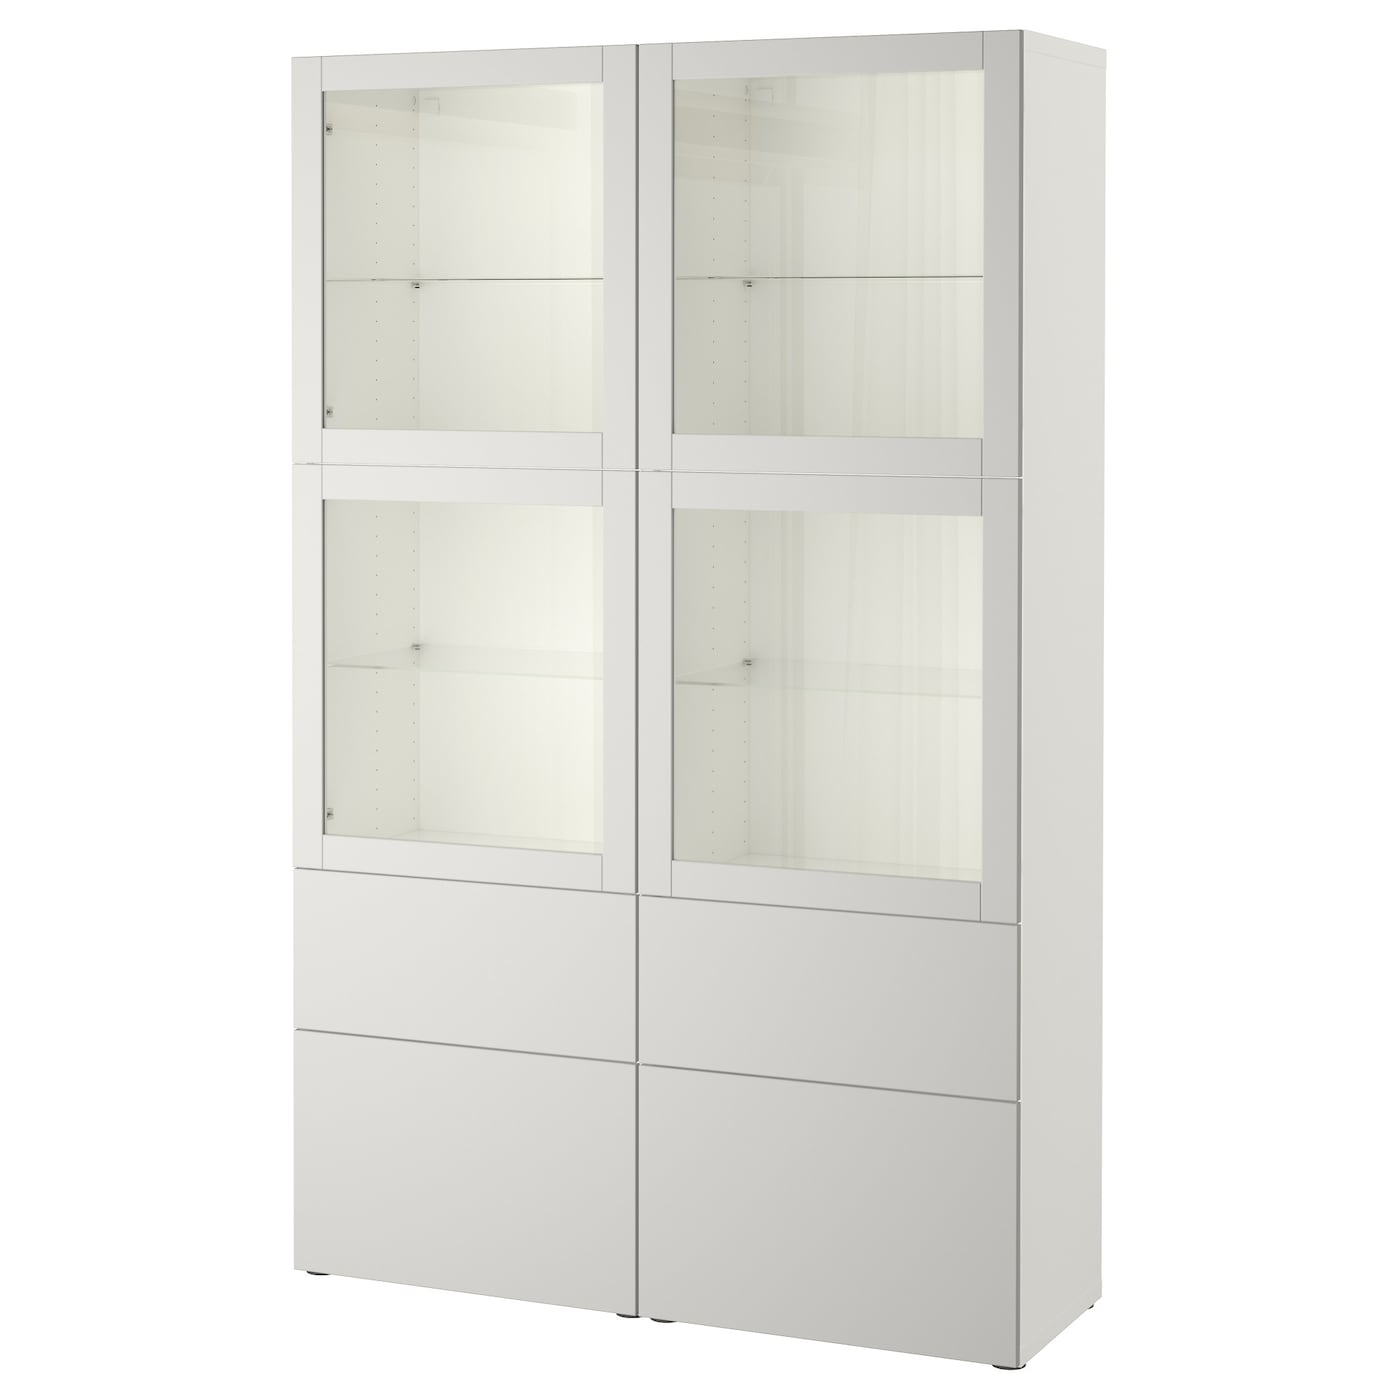 shelving units & systems | ikea ireland